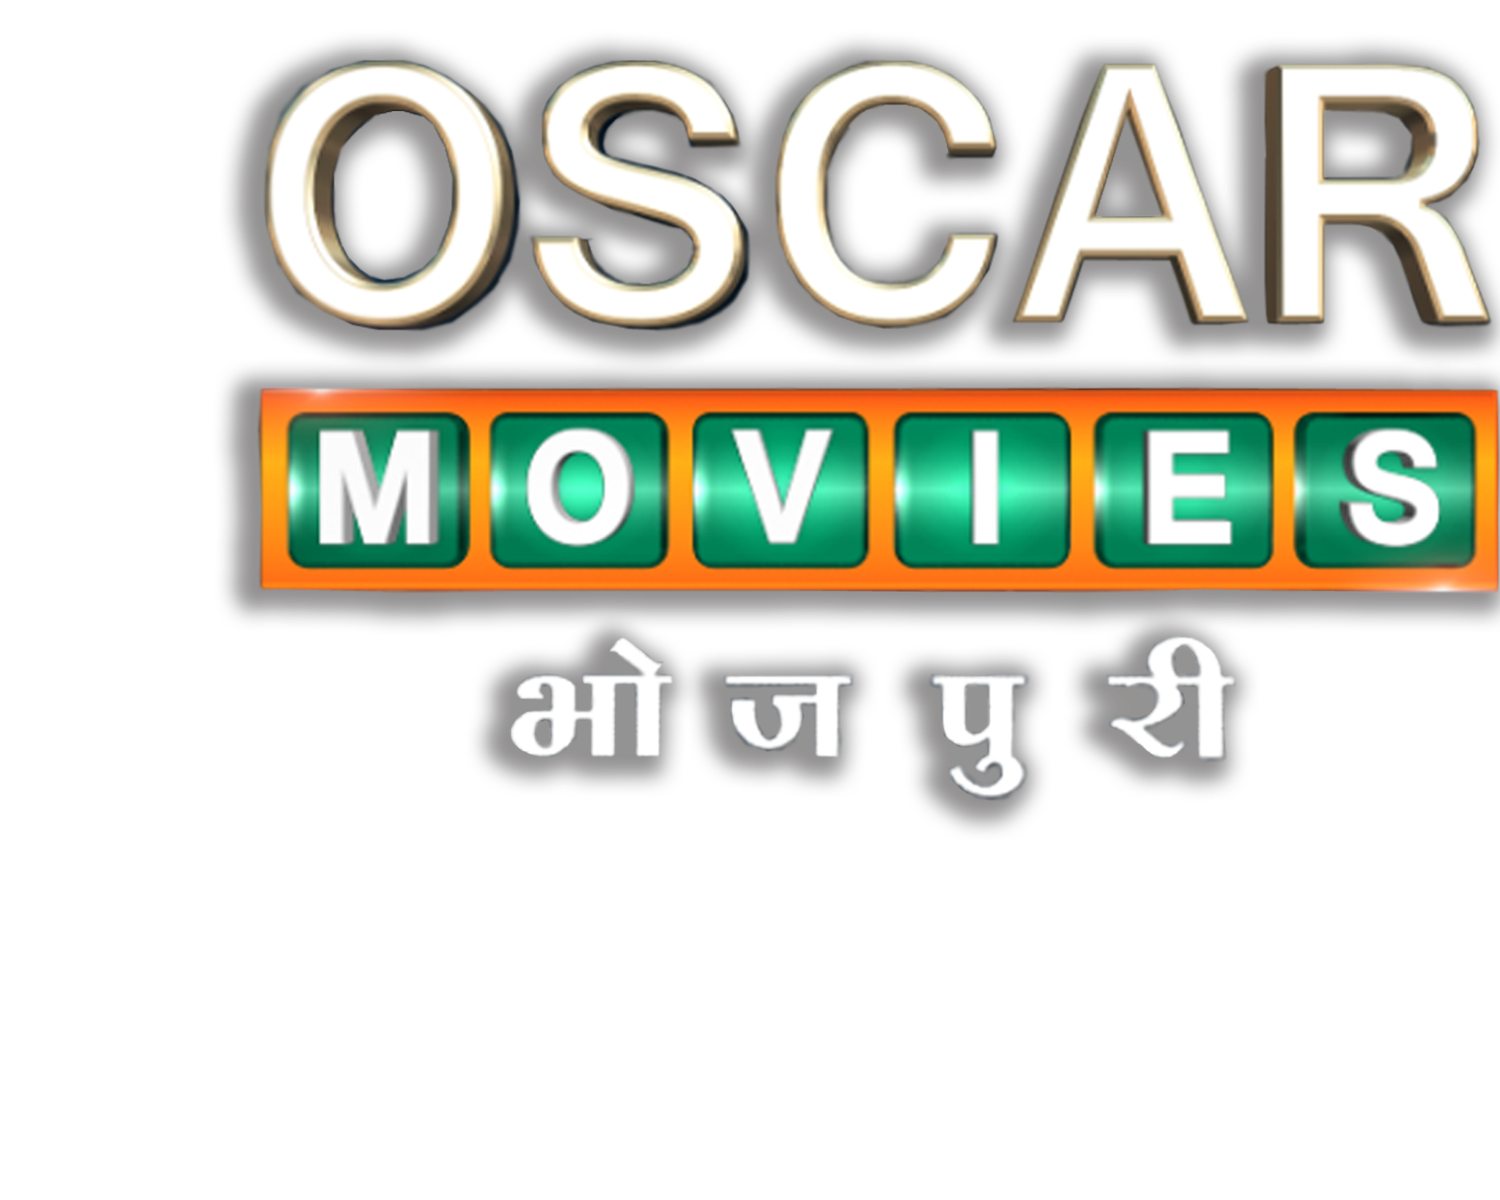 Oscar Movies Bhojpuri channel Added on Channel No.240